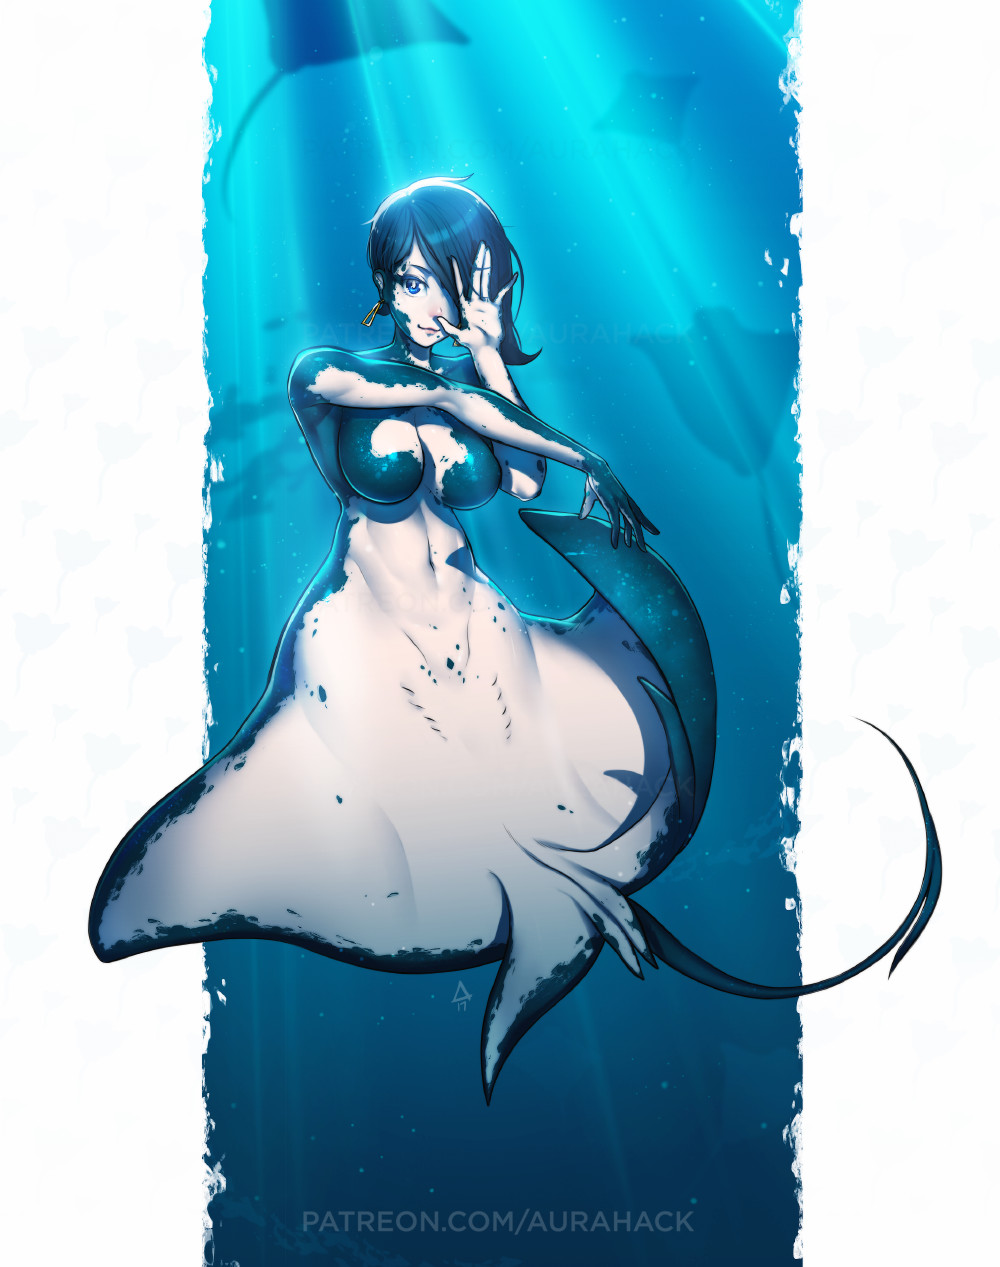 Erica june lahaie mermay